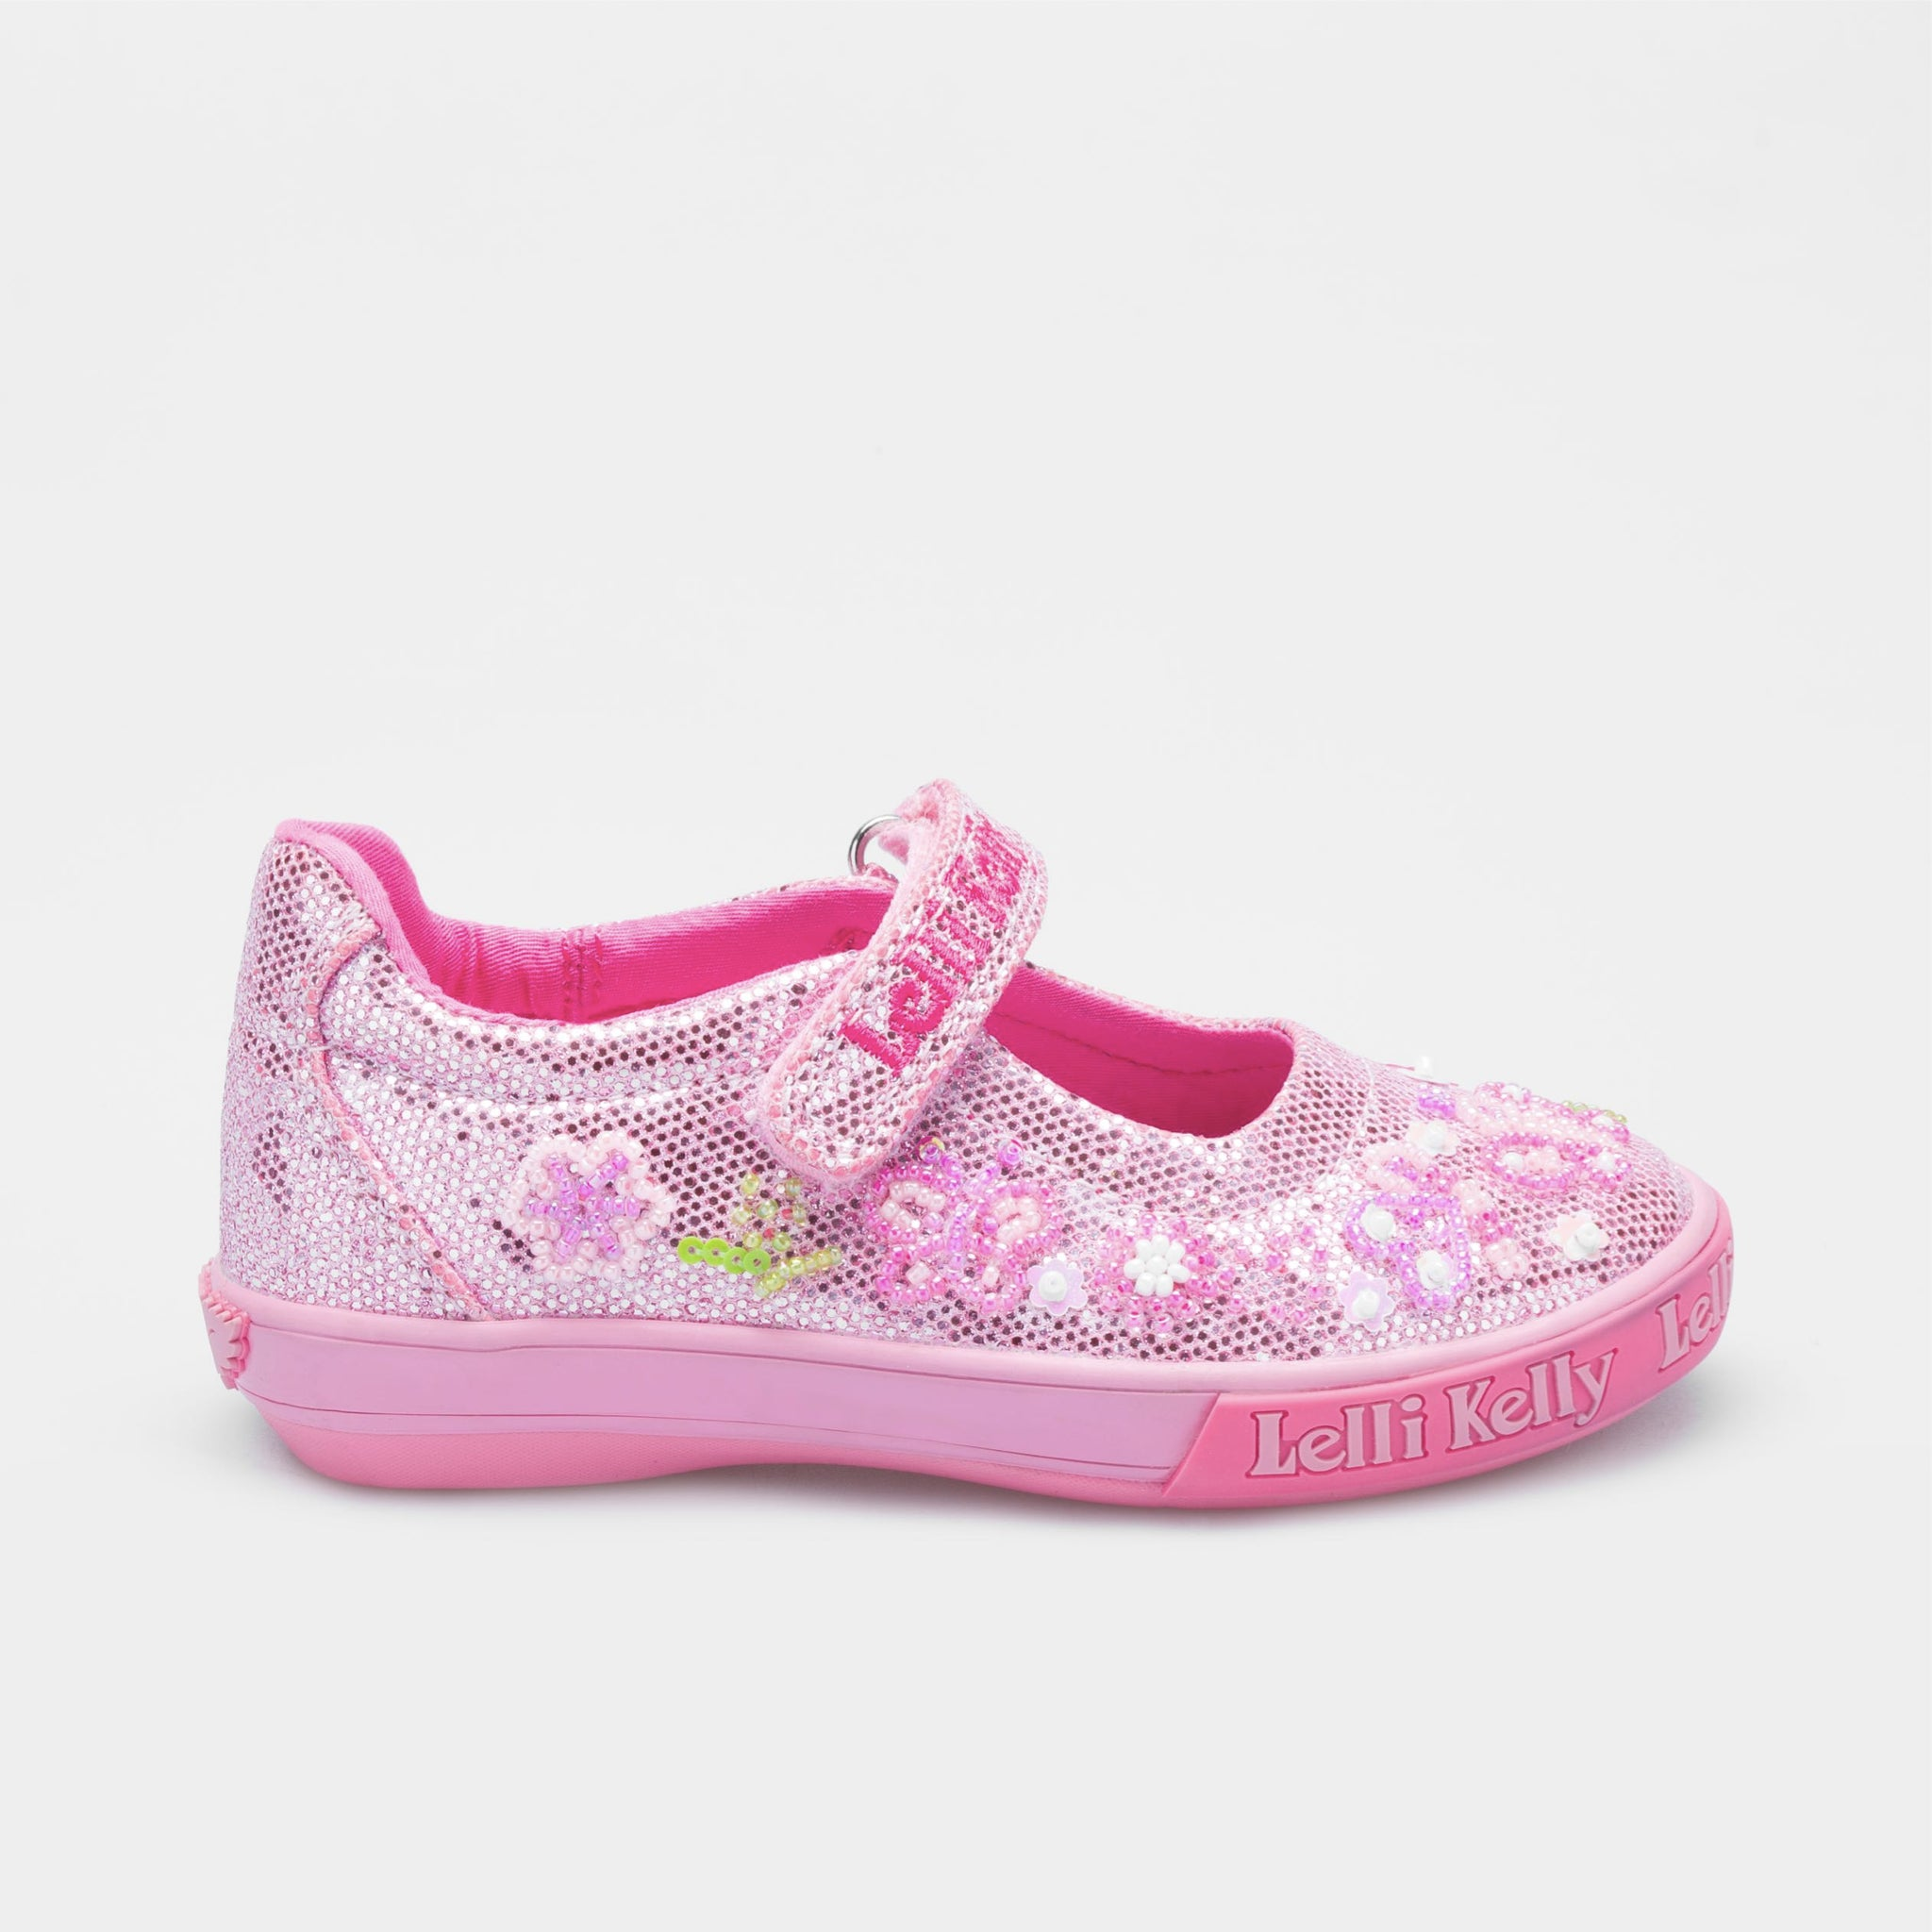 bfa75a37fa2 Lelli Kelly Butterfly GL D Rosa Glitter - Geoffrey and Joy